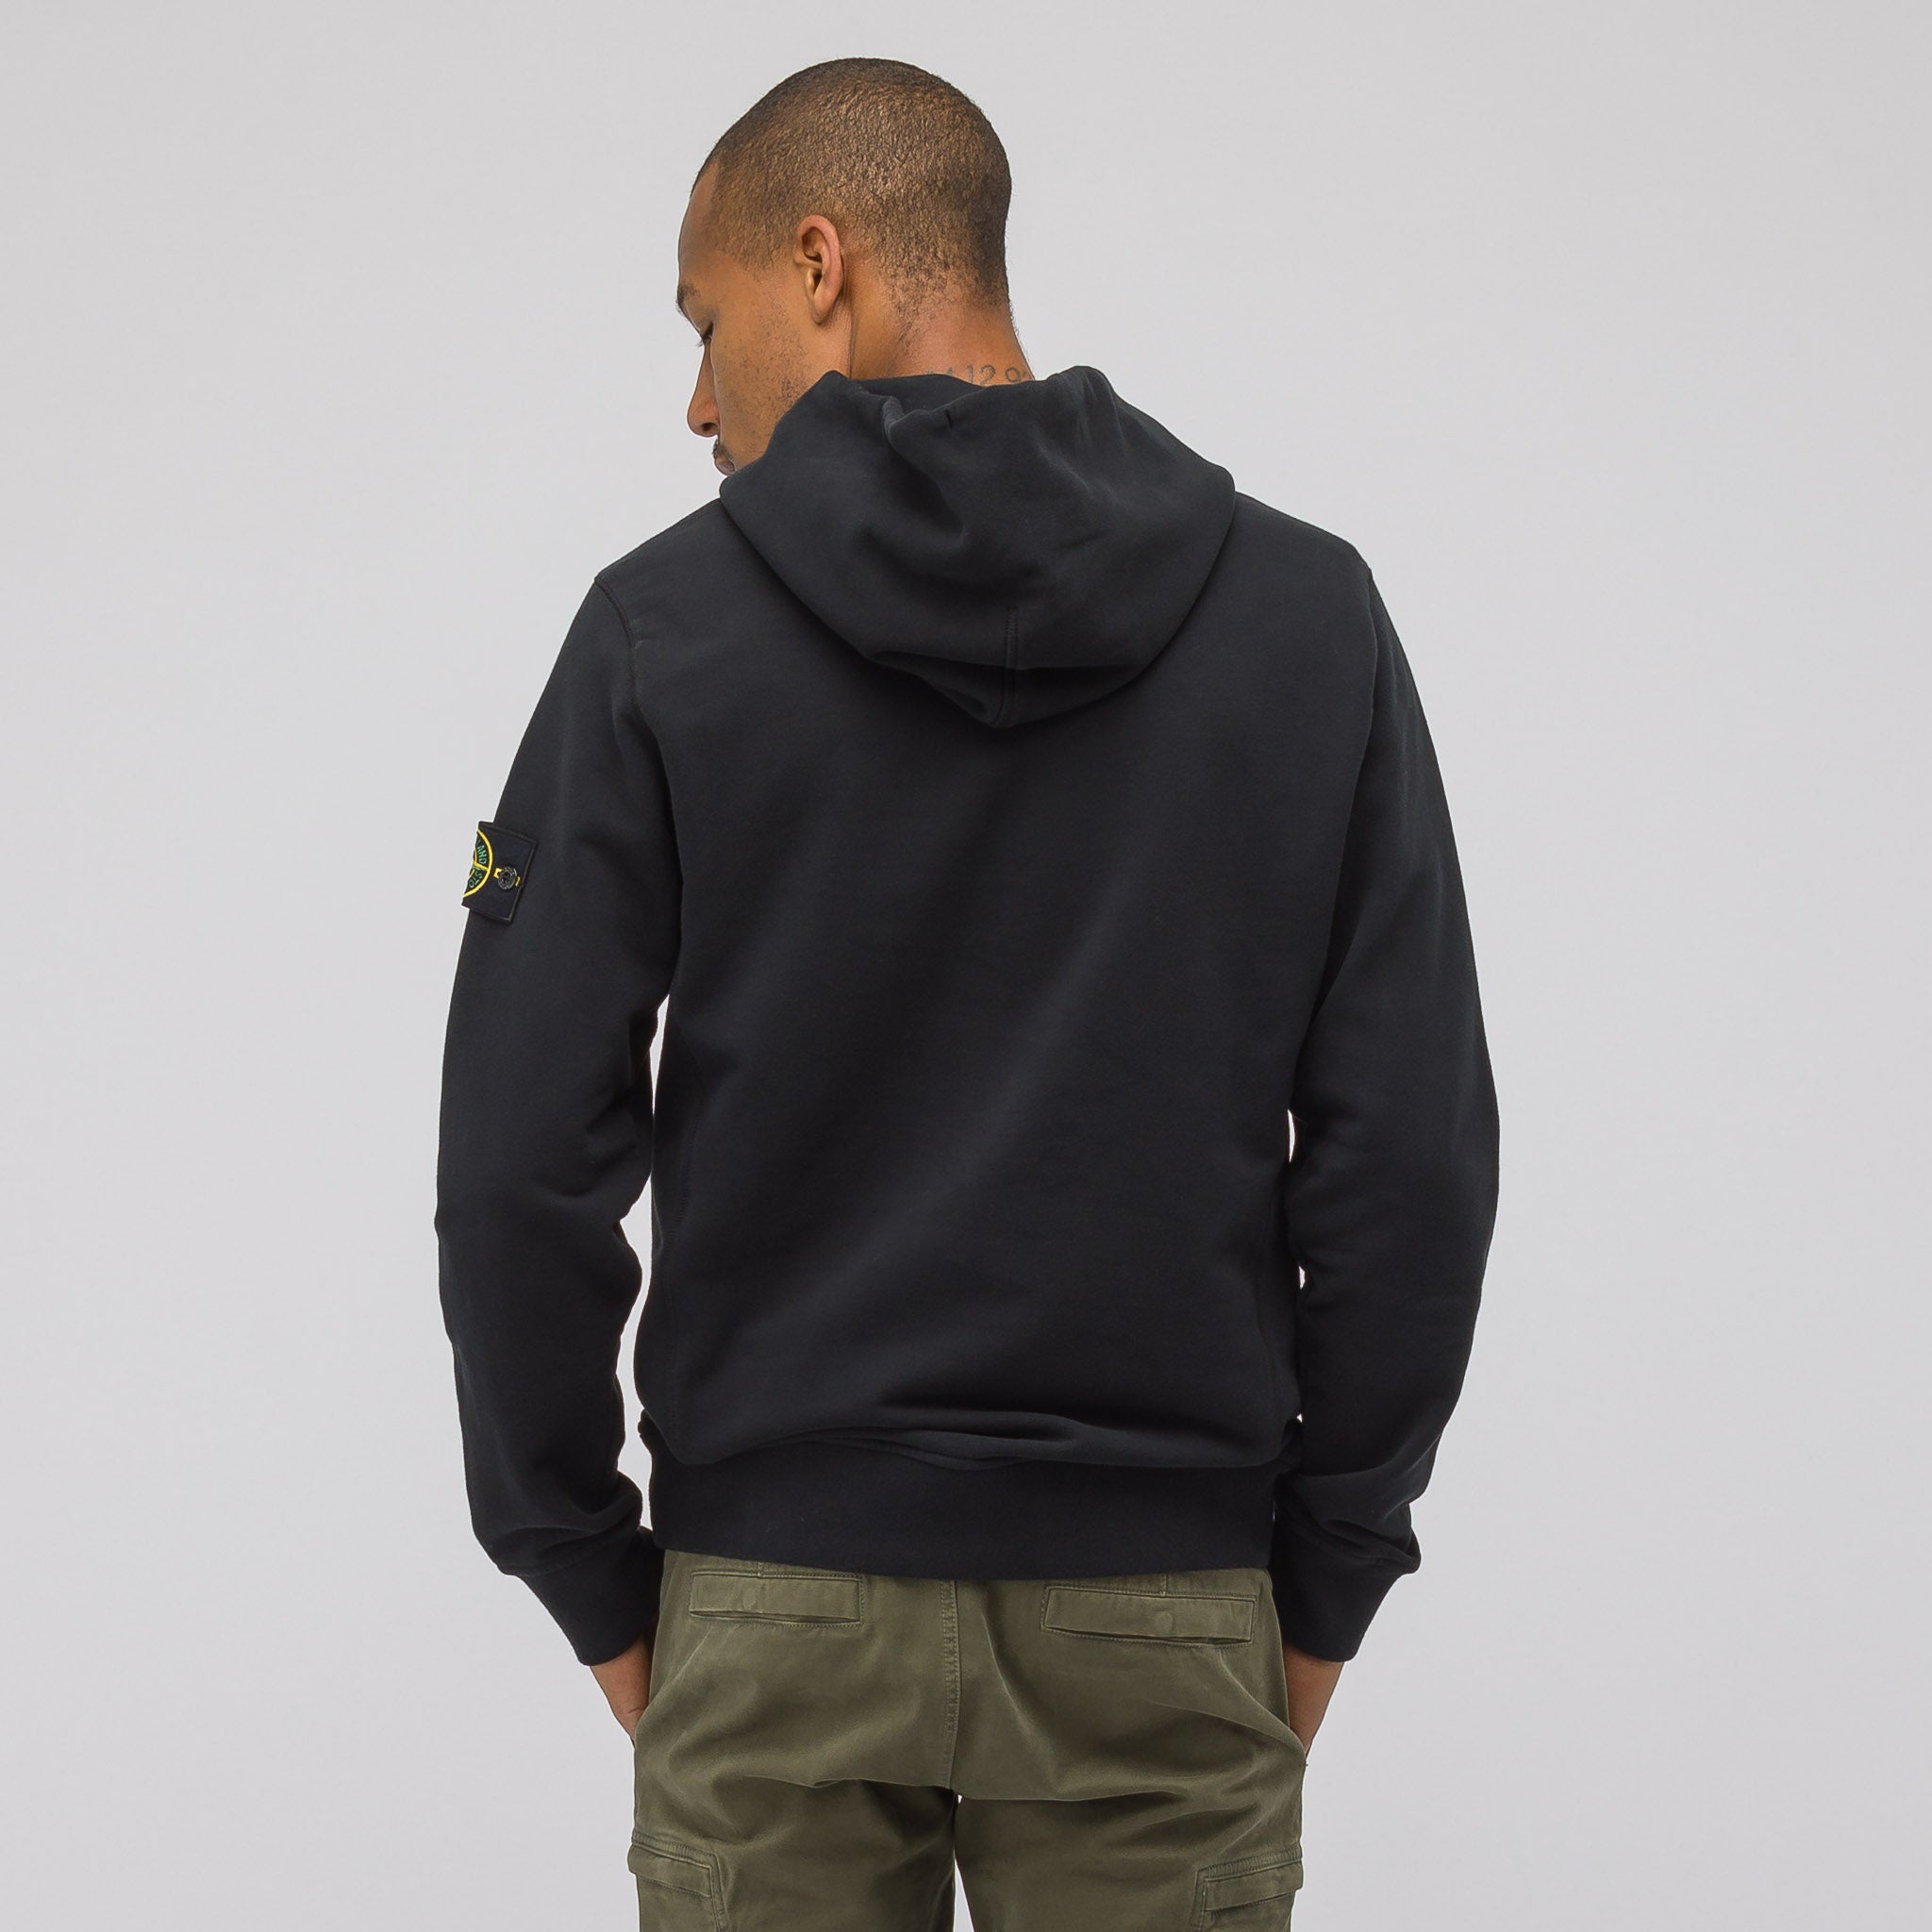 62820 Hooded Sweatshirt in Black